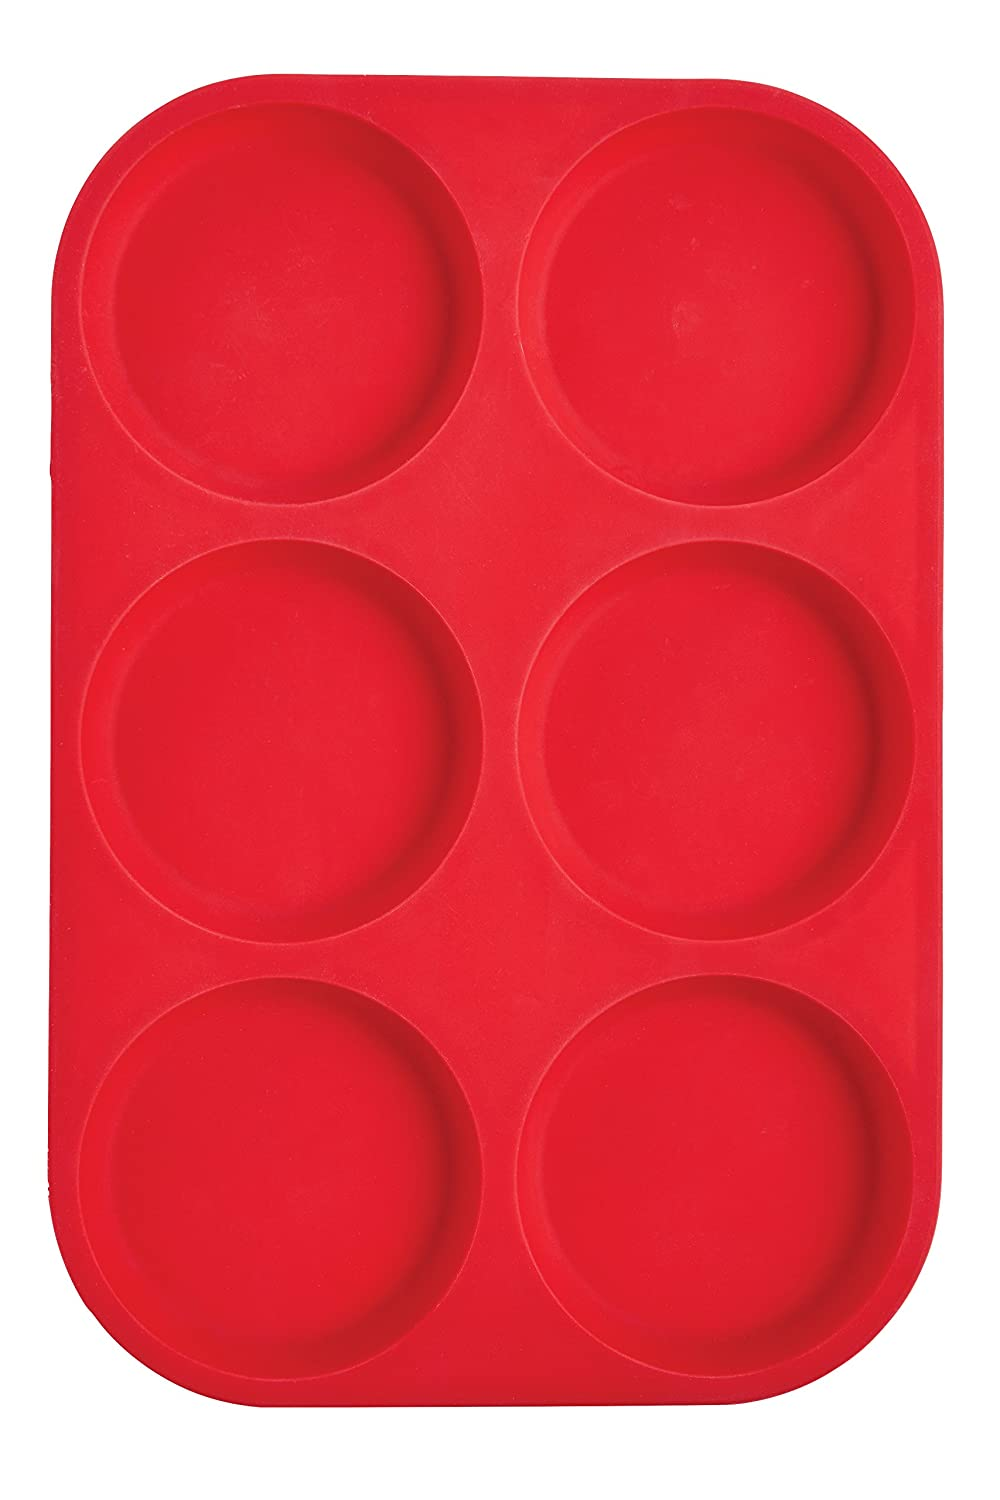 Mrs. Anderson's Baking 438176-Cup Muffin Top Pan, Non-Stick European-Grade Silicone